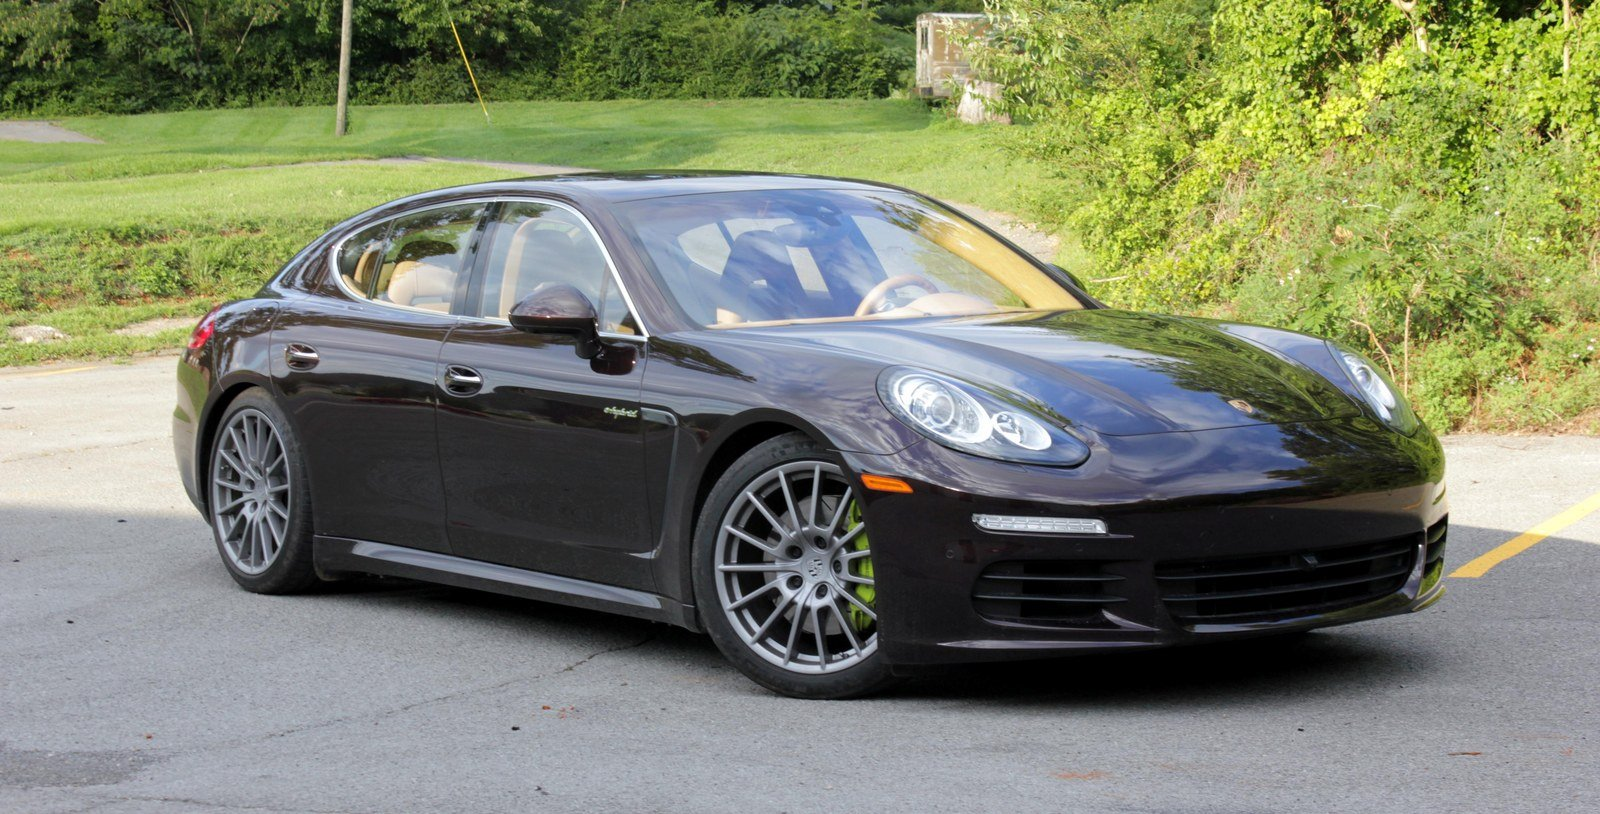 2015 porsche panamera s e hybrid driven review top speed. Black Bedroom Furniture Sets. Home Design Ideas